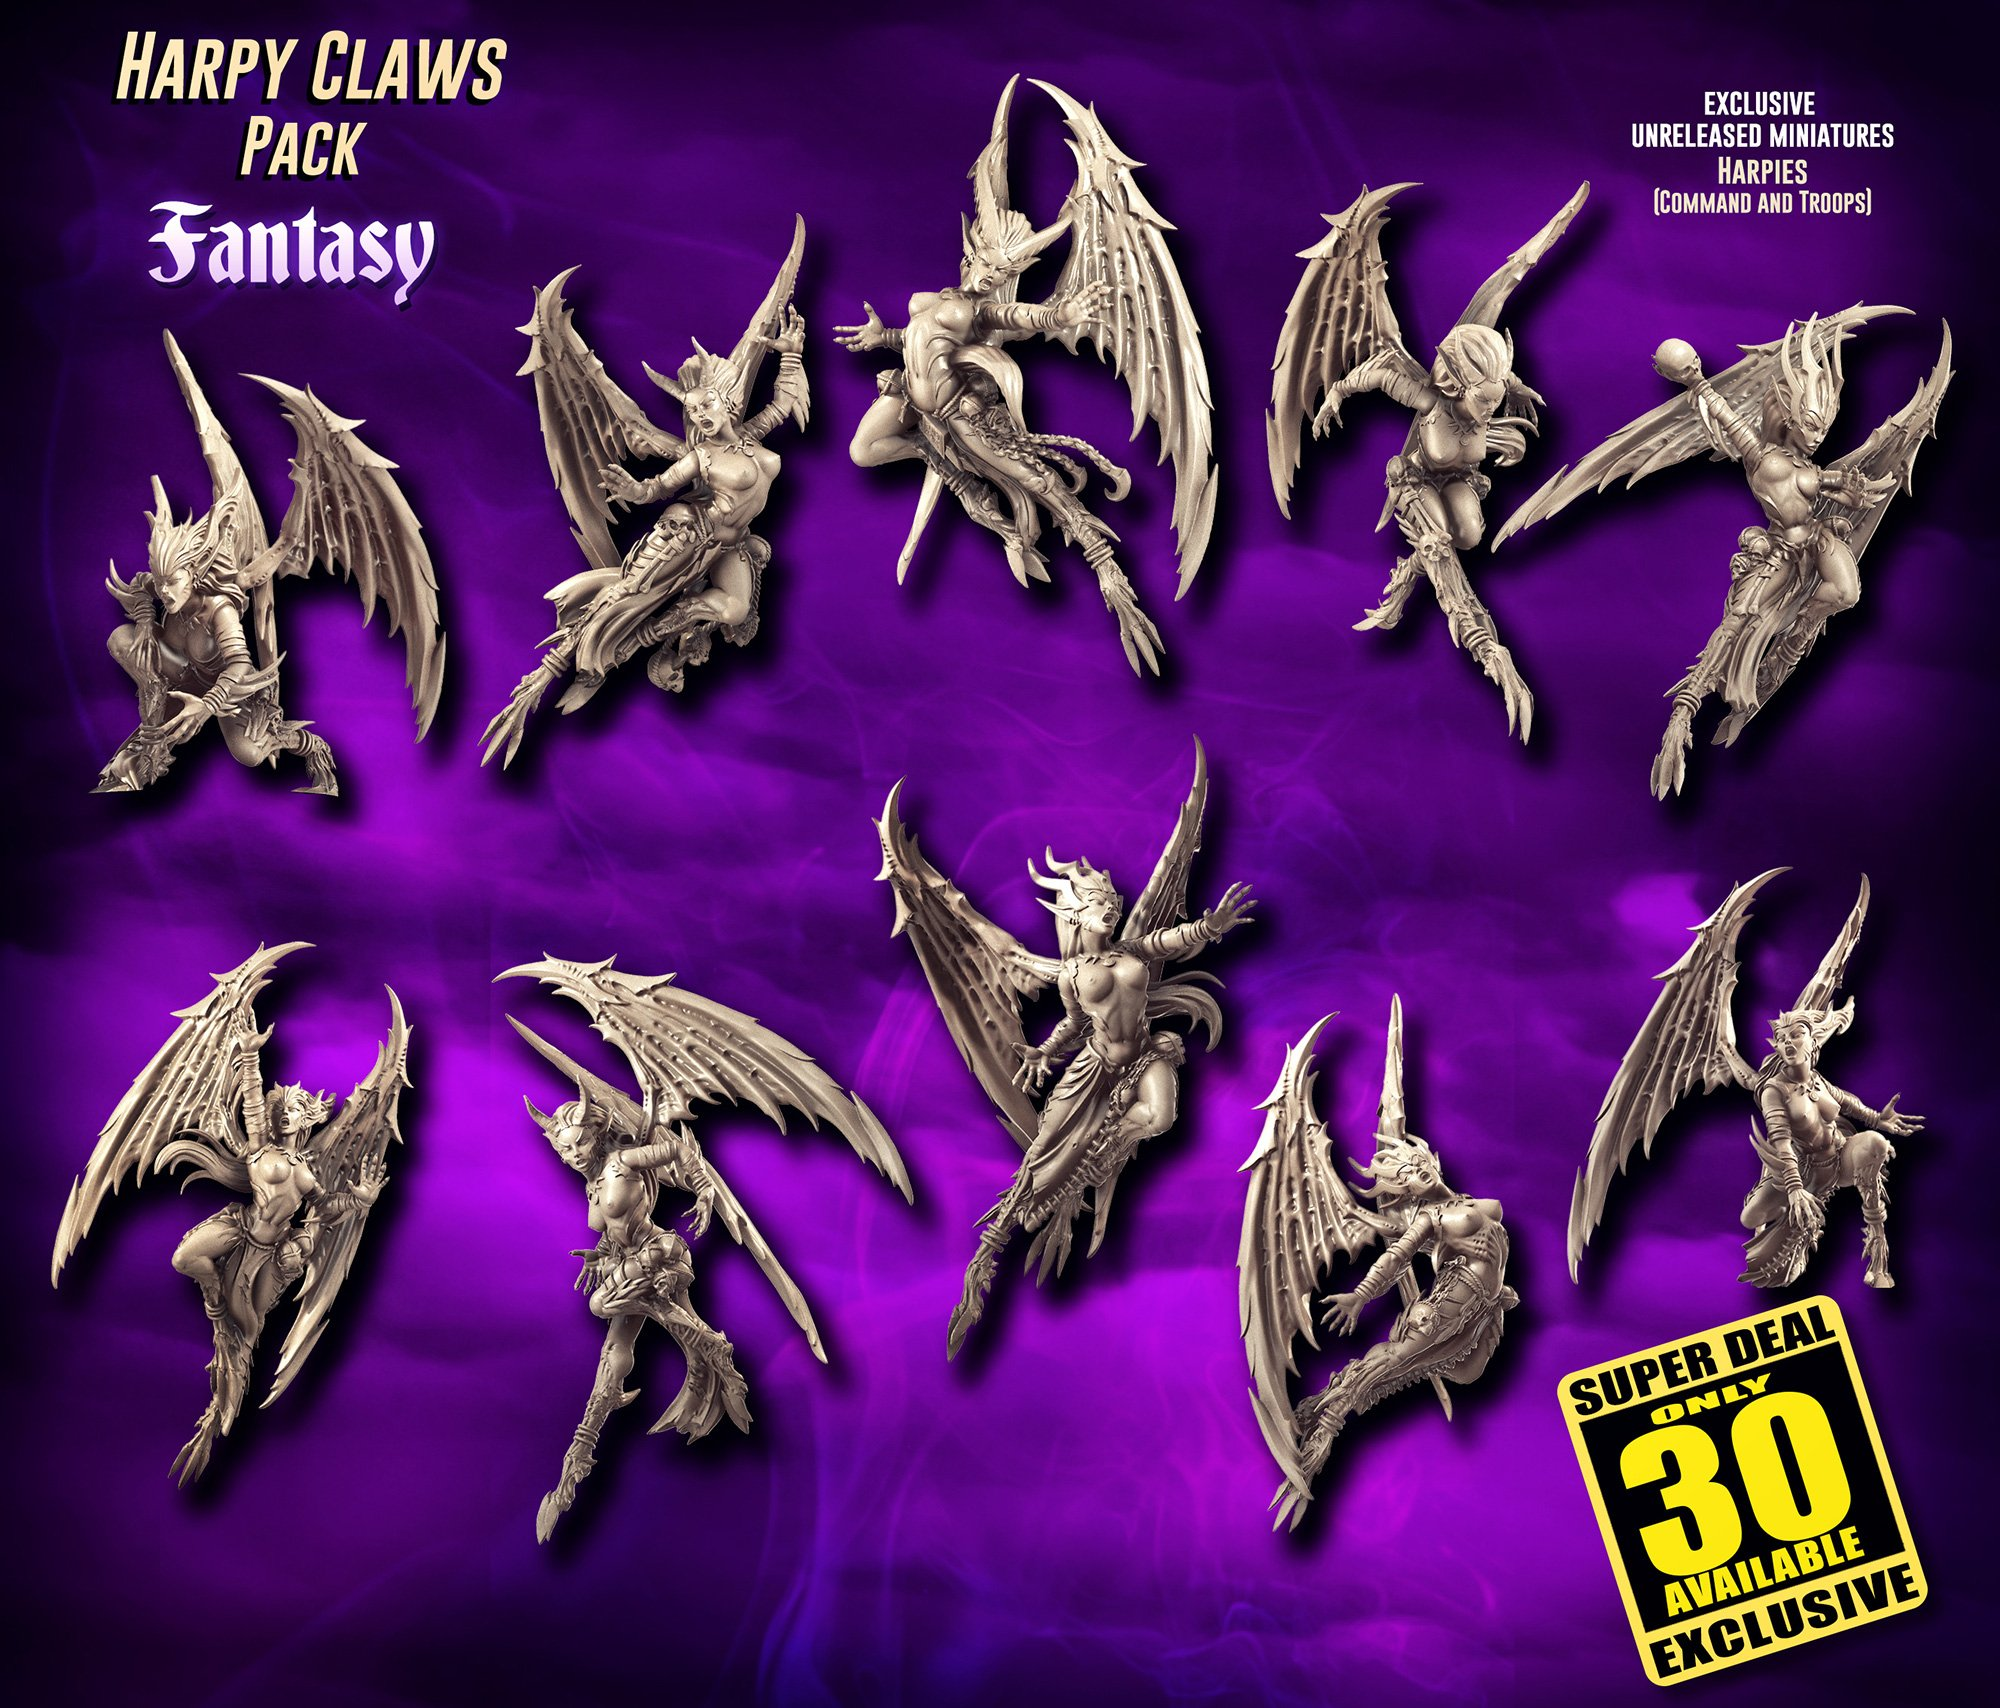 EXCLUSIVE Harpy Claws Pack (DE - FANTASY)